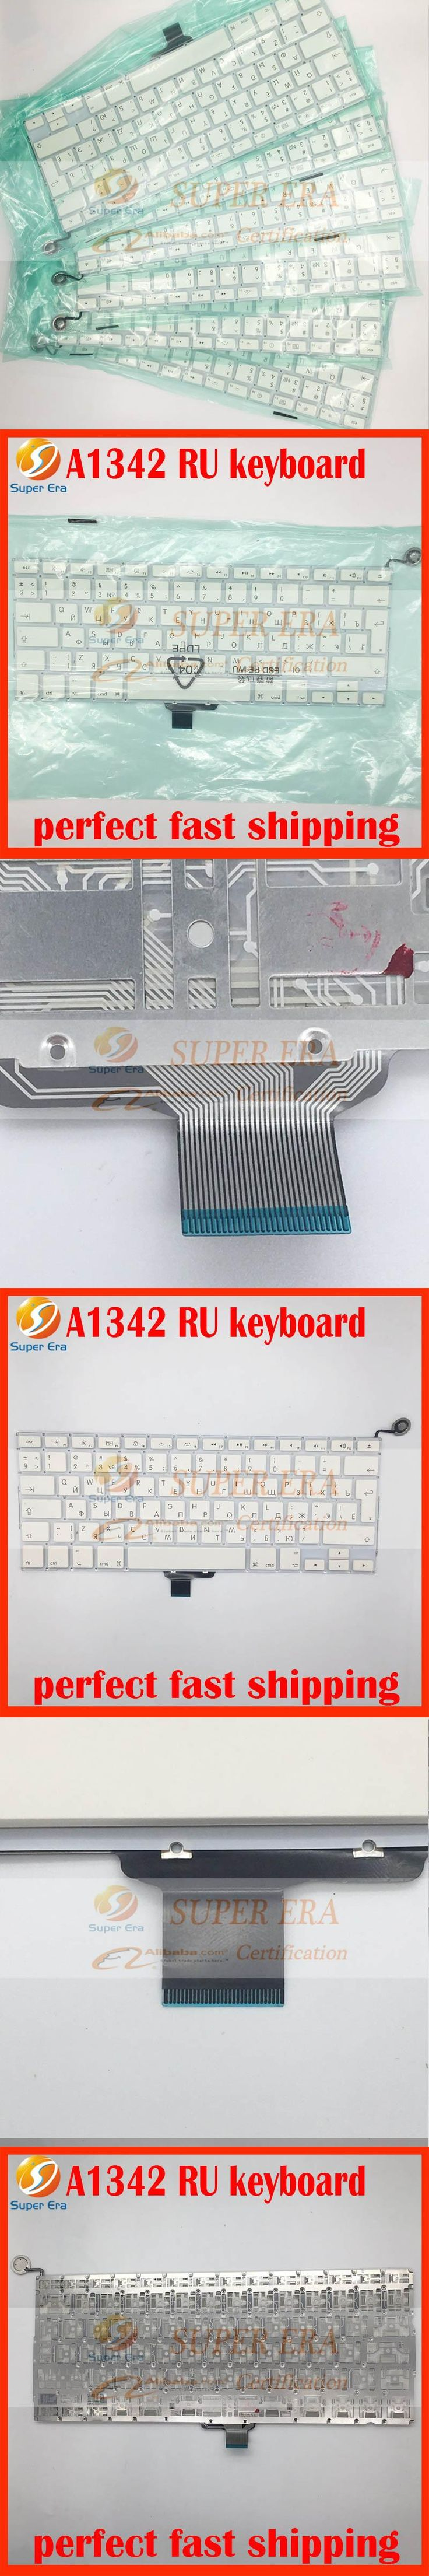 NEW perfect Russia keyboard clavier for macbook 13.3'' A1342 RU Russian keyboard replacement without backlight 2009 2010year